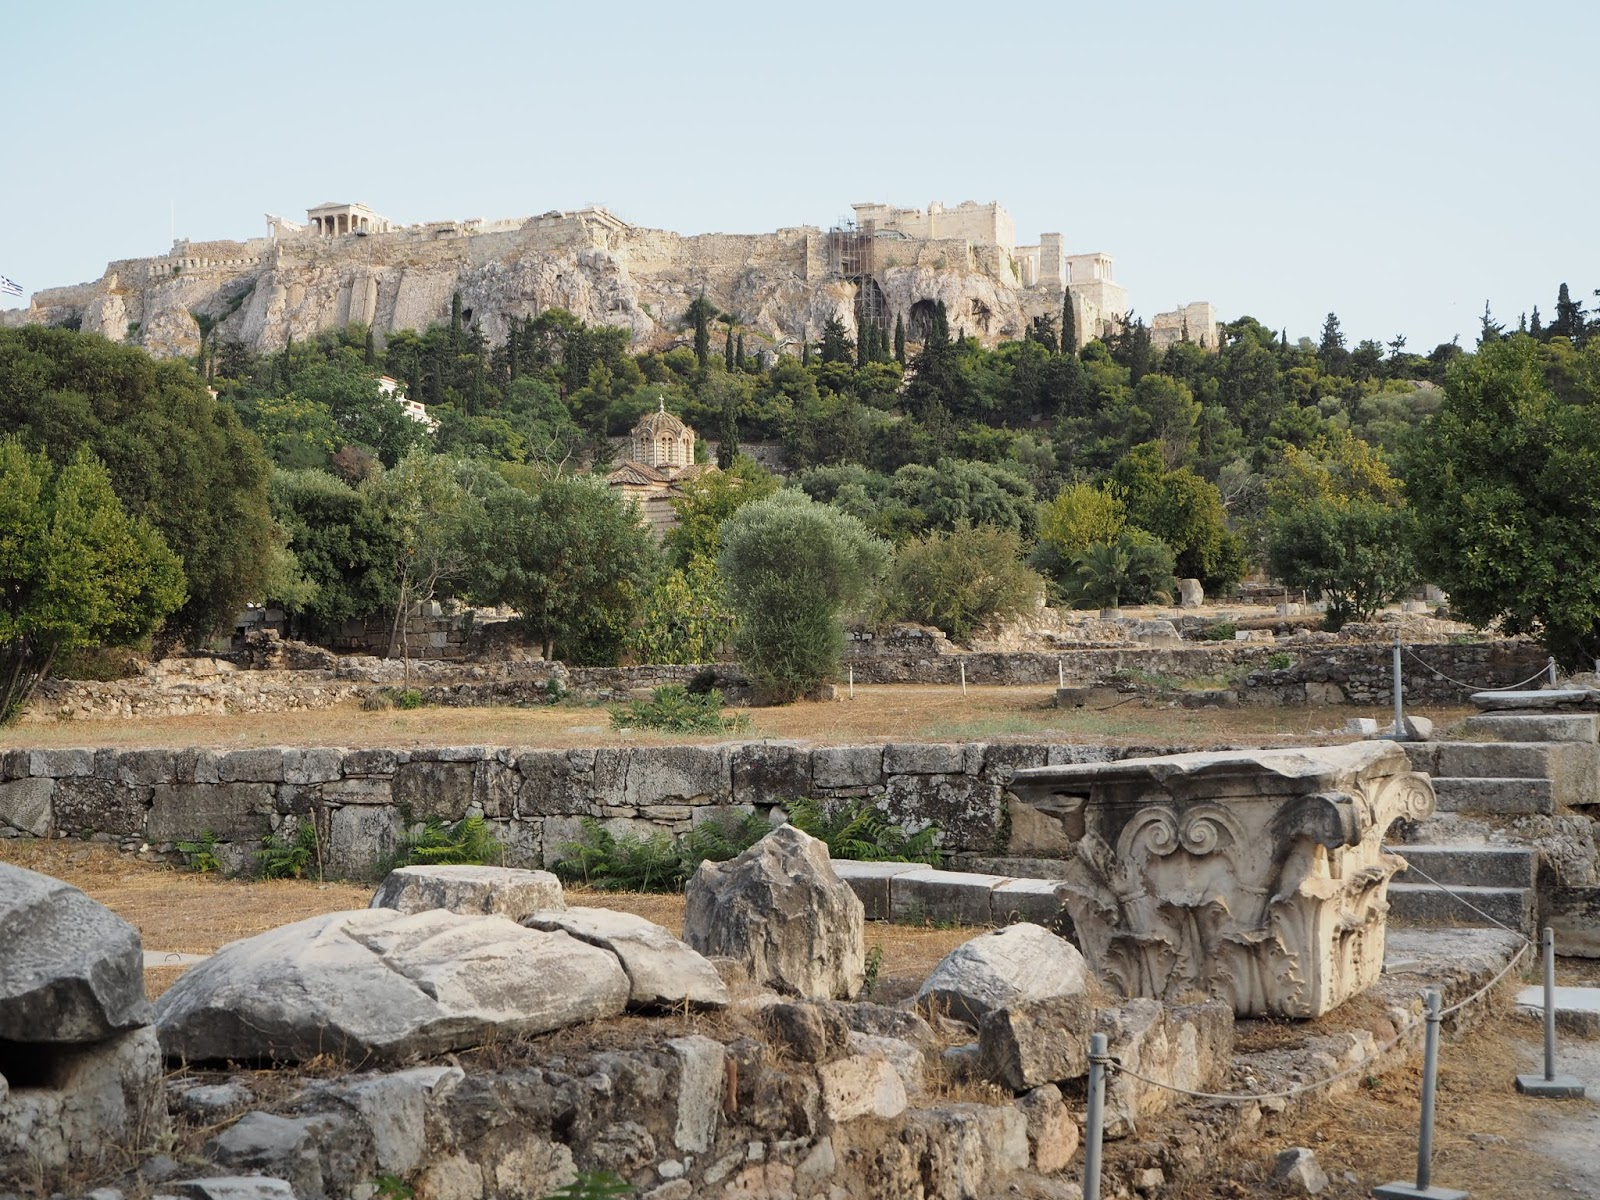 acropolis north slope archeological sites and ruins